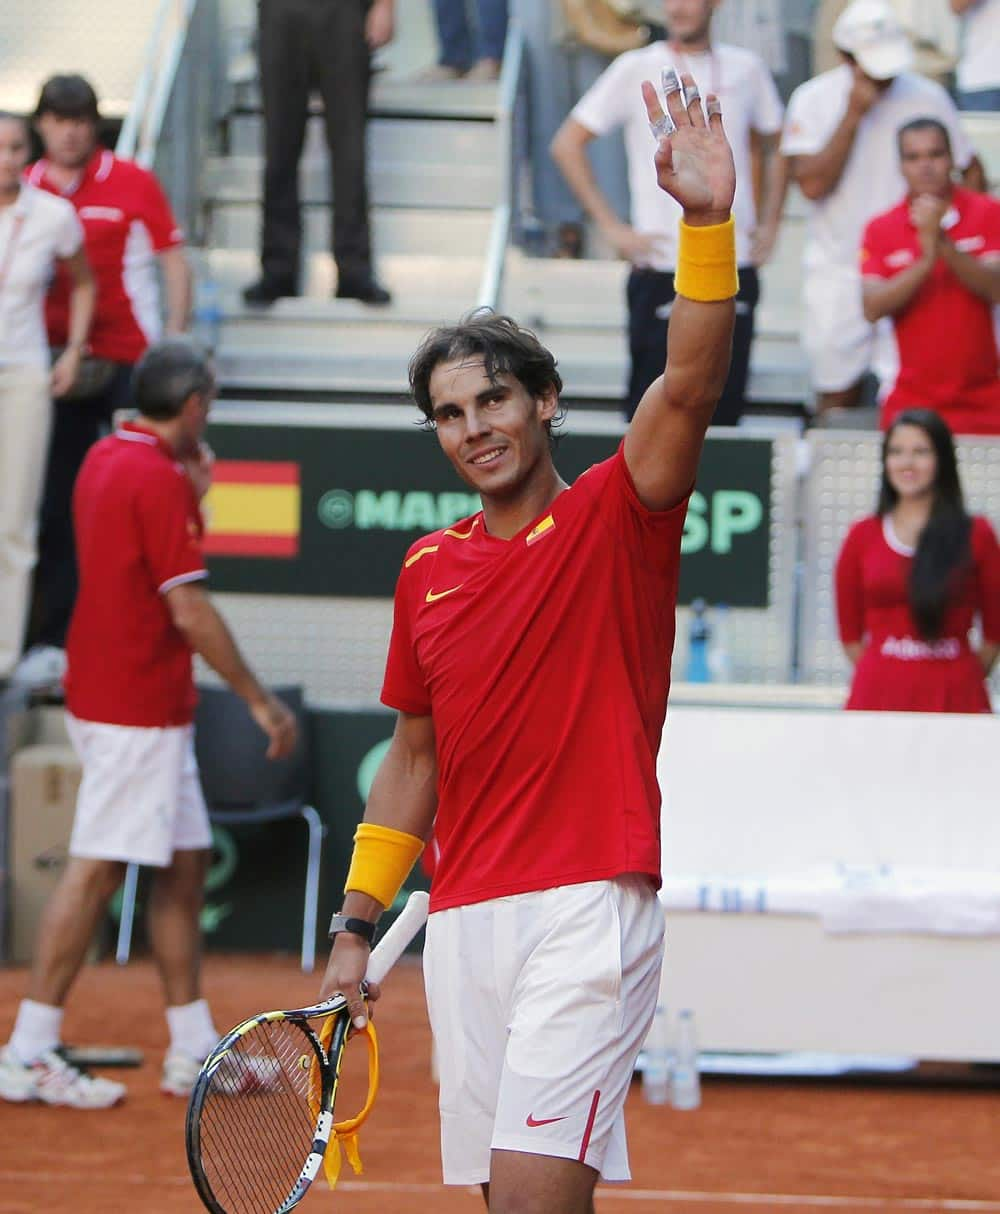 Spain`s Rafael Nadal celebrates his victory during a match against Ukraine`s Sergiy Stakhovky on the first day of the World Group play-off Davis Cup tennis in Madrid.